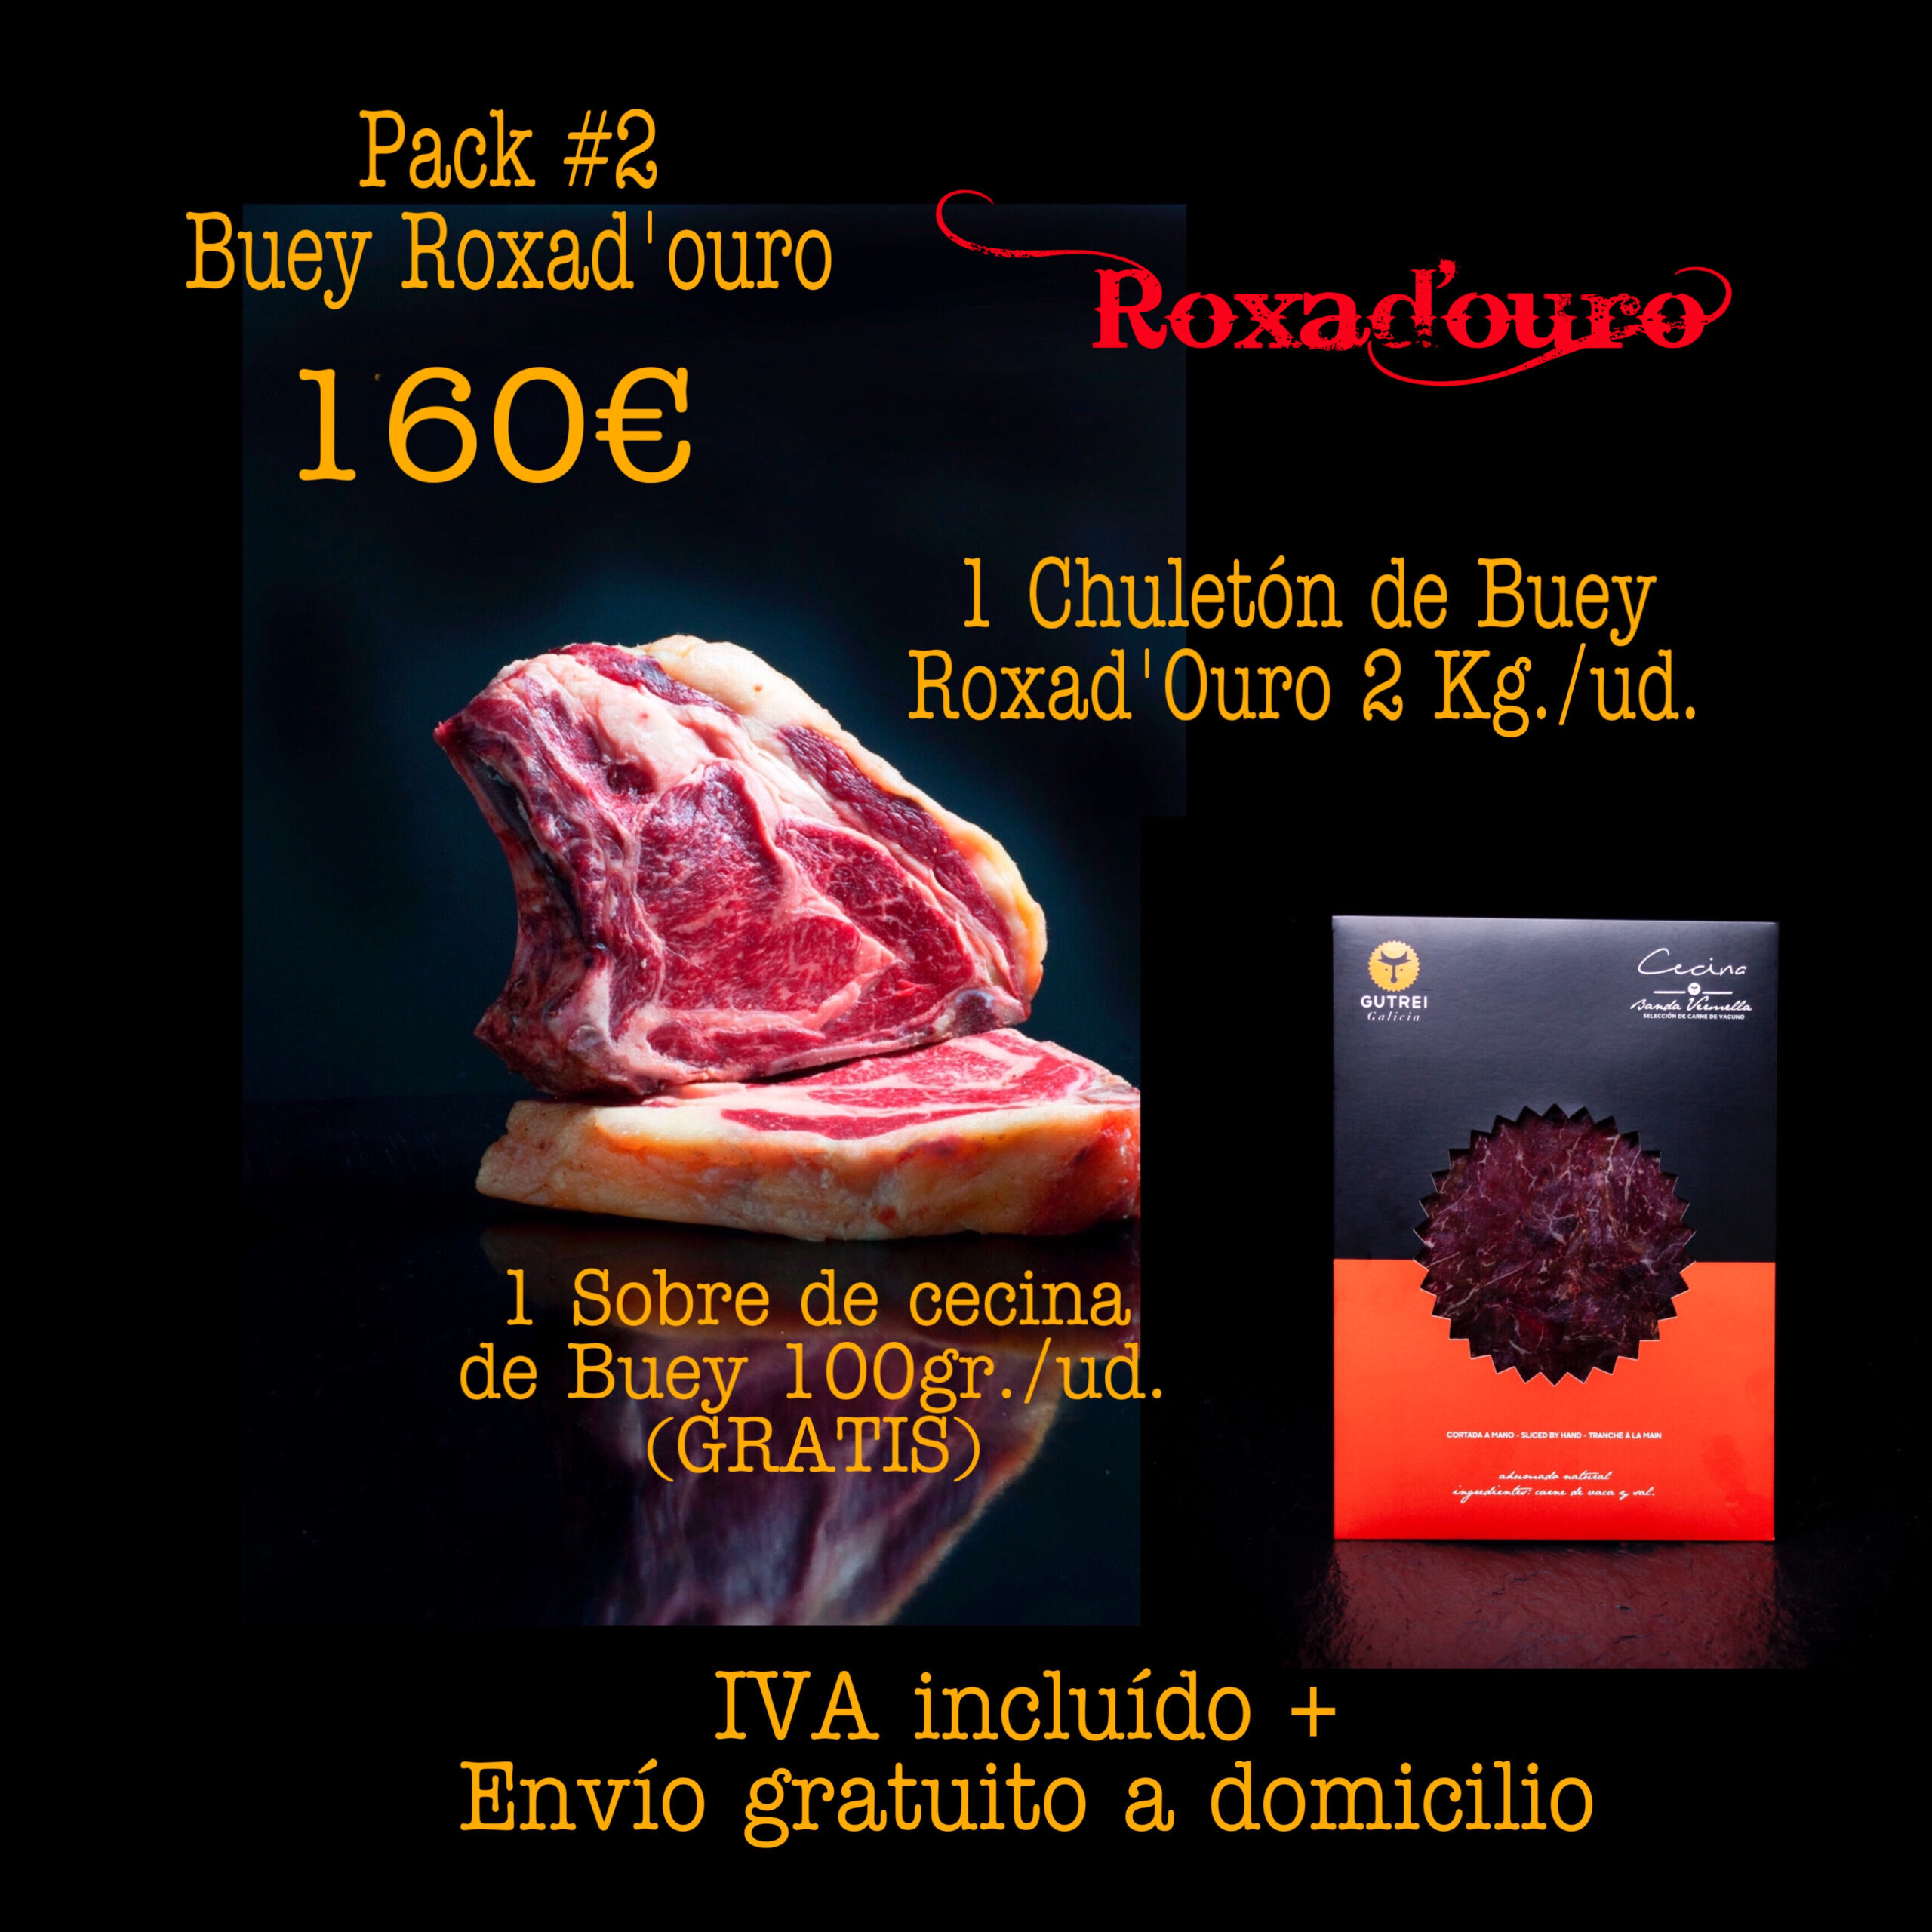 Pack 1 Buey Roxad'Ouro